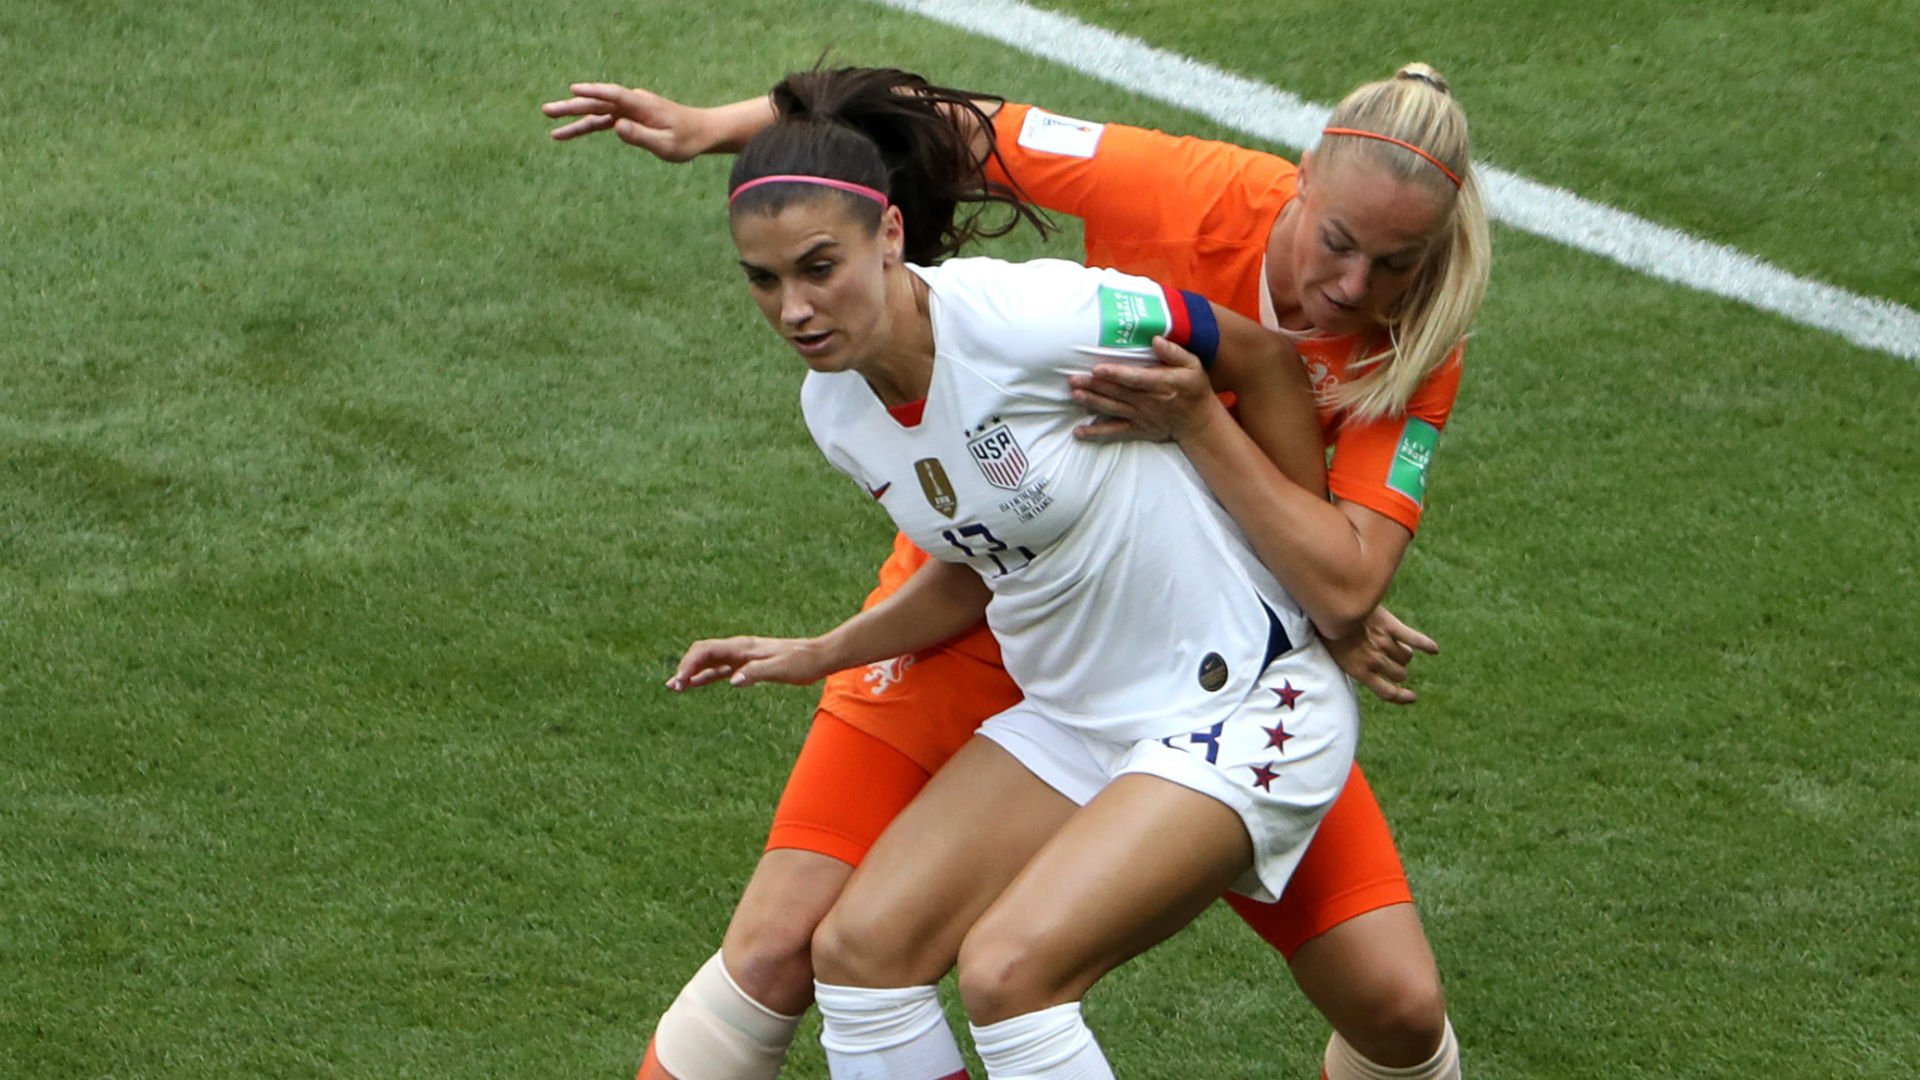 Alex Morgan Stefanie Van der Gragt USWNT USA Women's World Cup 2019